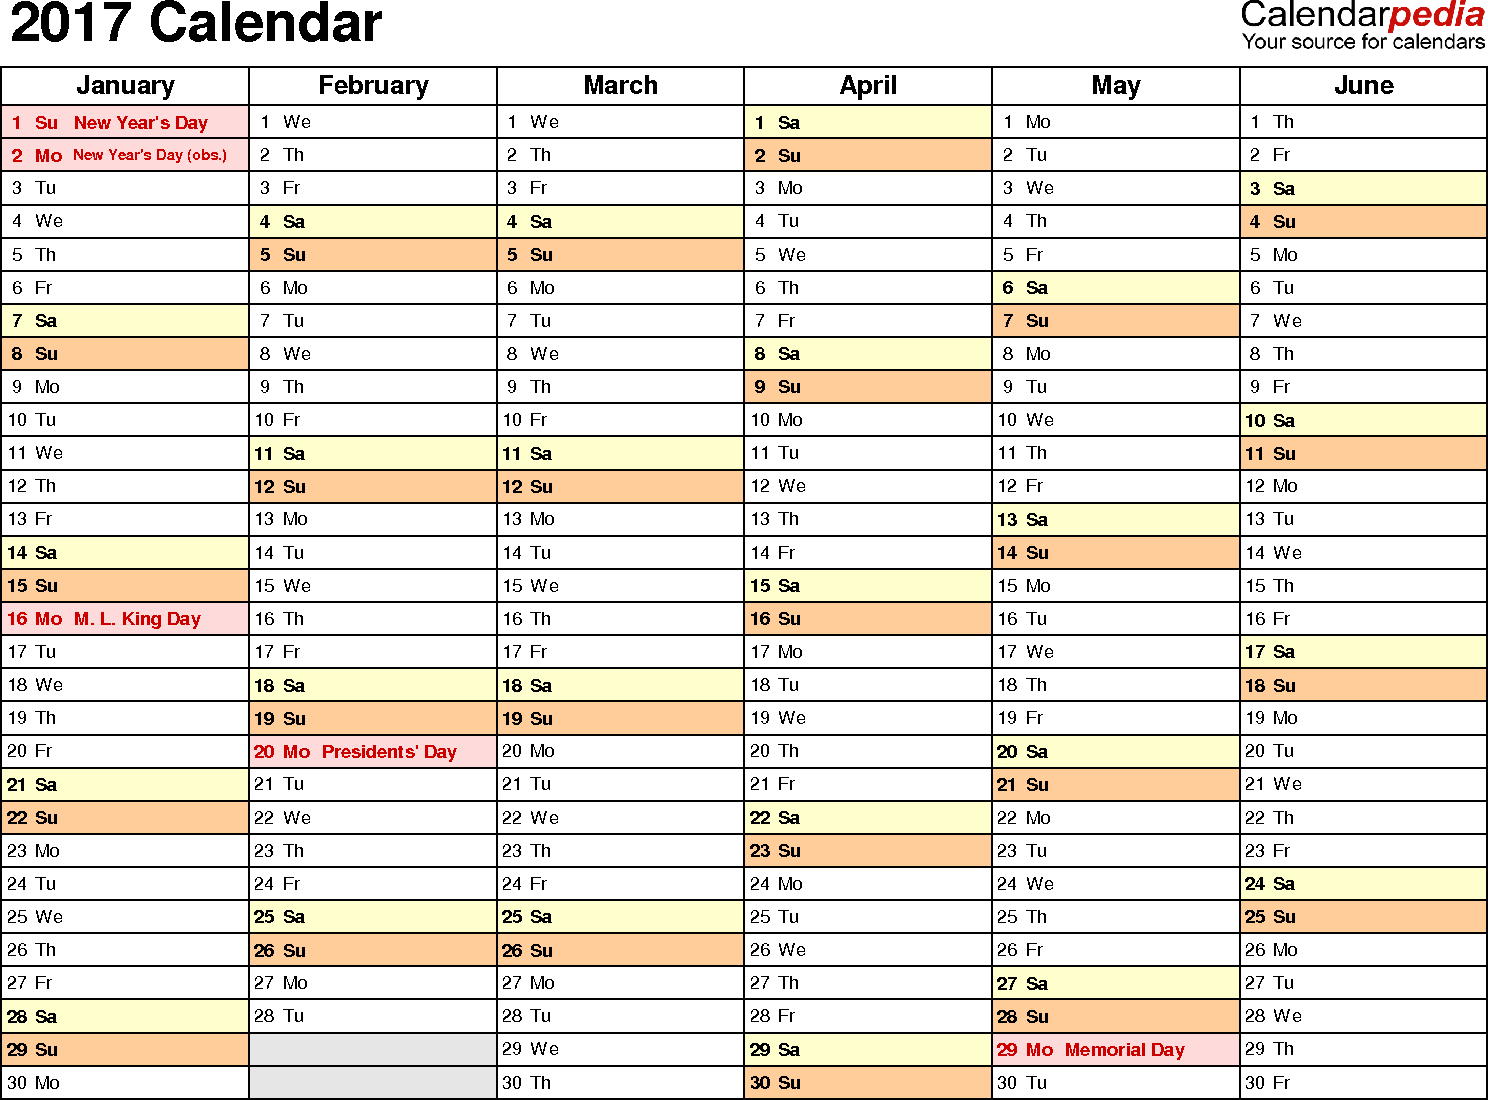 Ediblewildsus  Ravishing  Calendar  Download  Free Printable Excel Templates Xls With Goodlooking Template   Calendar For Excel Months Horizontally  Pages Landscape Orientation With Divine How Do You Enable Macros In Excel Also Excel Invoice In Addition Add Title To Chart In Excel And Excel Physical Therapy Omaha As Well As How To Compare Two Lists In Excel Additionally How To Use Excel Formulas From Calendarpediacom With Ediblewildsus  Goodlooking  Calendar  Download  Free Printable Excel Templates Xls With Divine Template   Calendar For Excel Months Horizontally  Pages Landscape Orientation And Ravishing How Do You Enable Macros In Excel Also Excel Invoice In Addition Add Title To Chart In Excel From Calendarpediacom